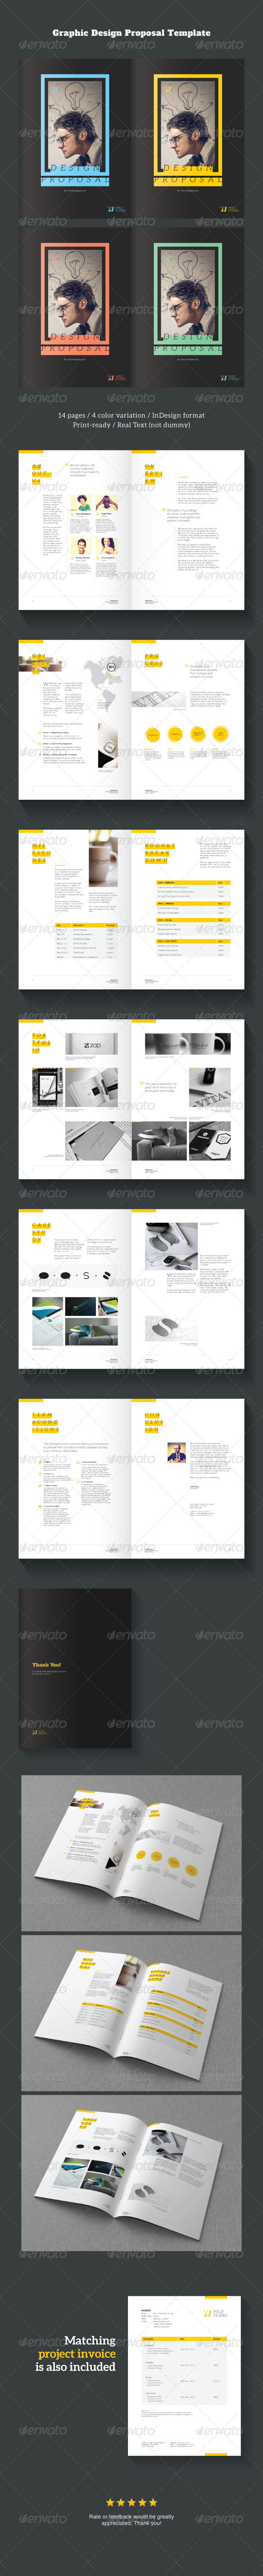 graphic design project proposal template proposals invoices stationery